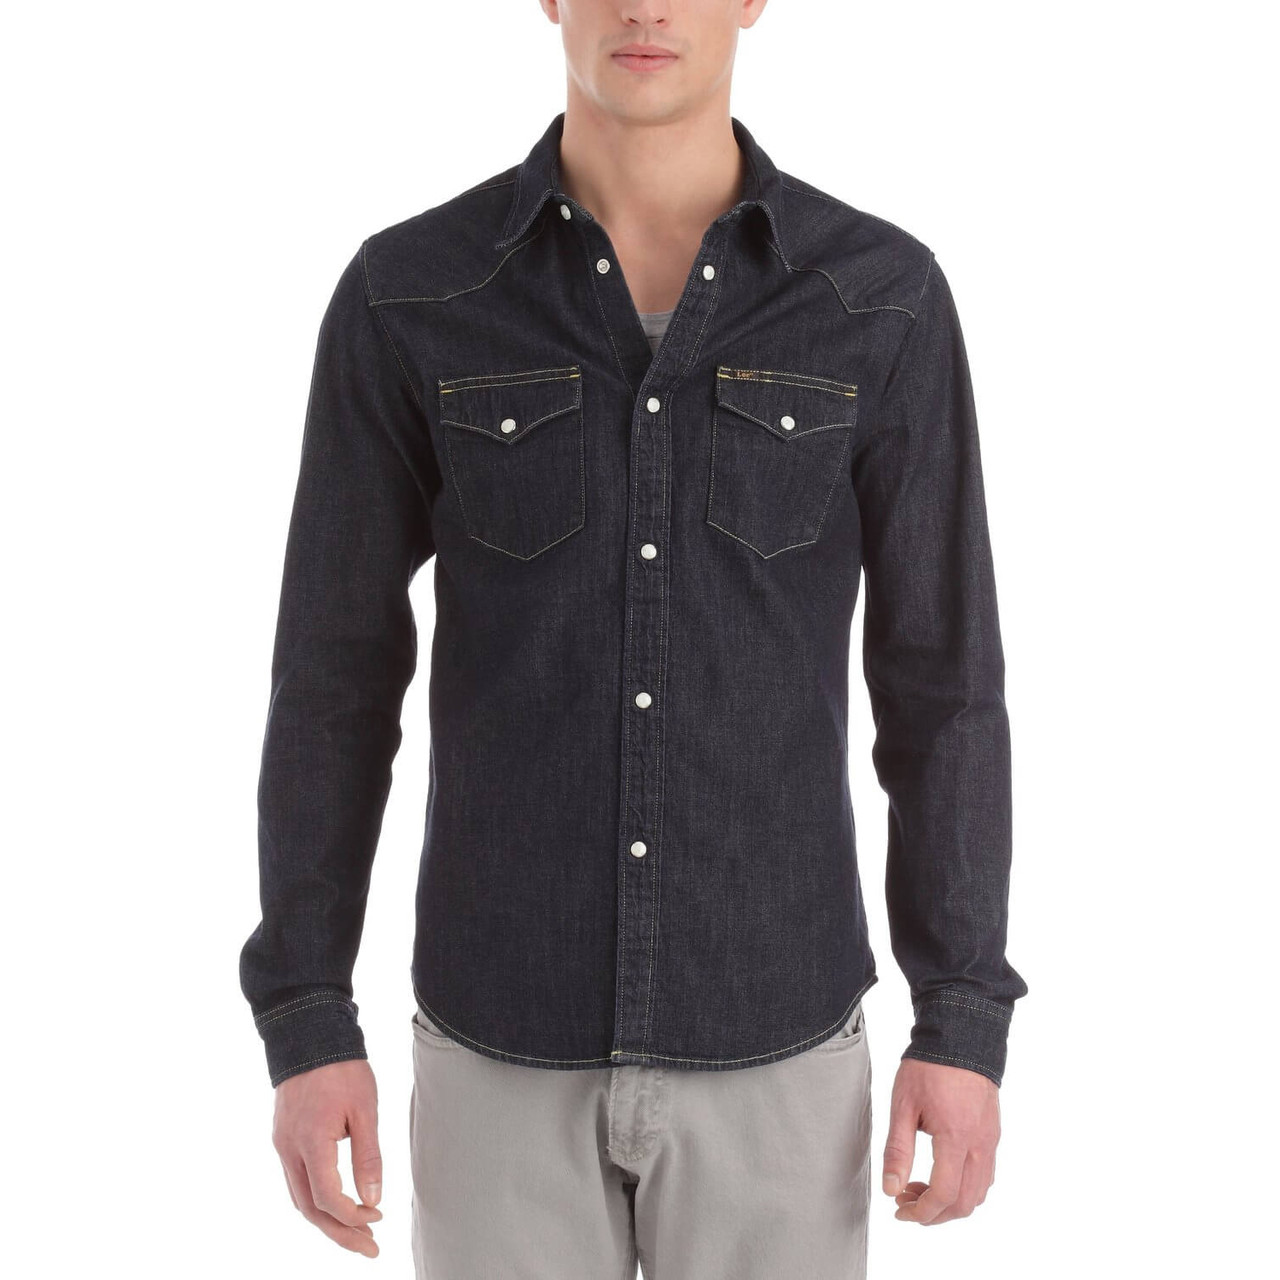 19e1692ca03 Lee Western Denim Shirt Stone Rinse Blue Image. Double tap to zoom